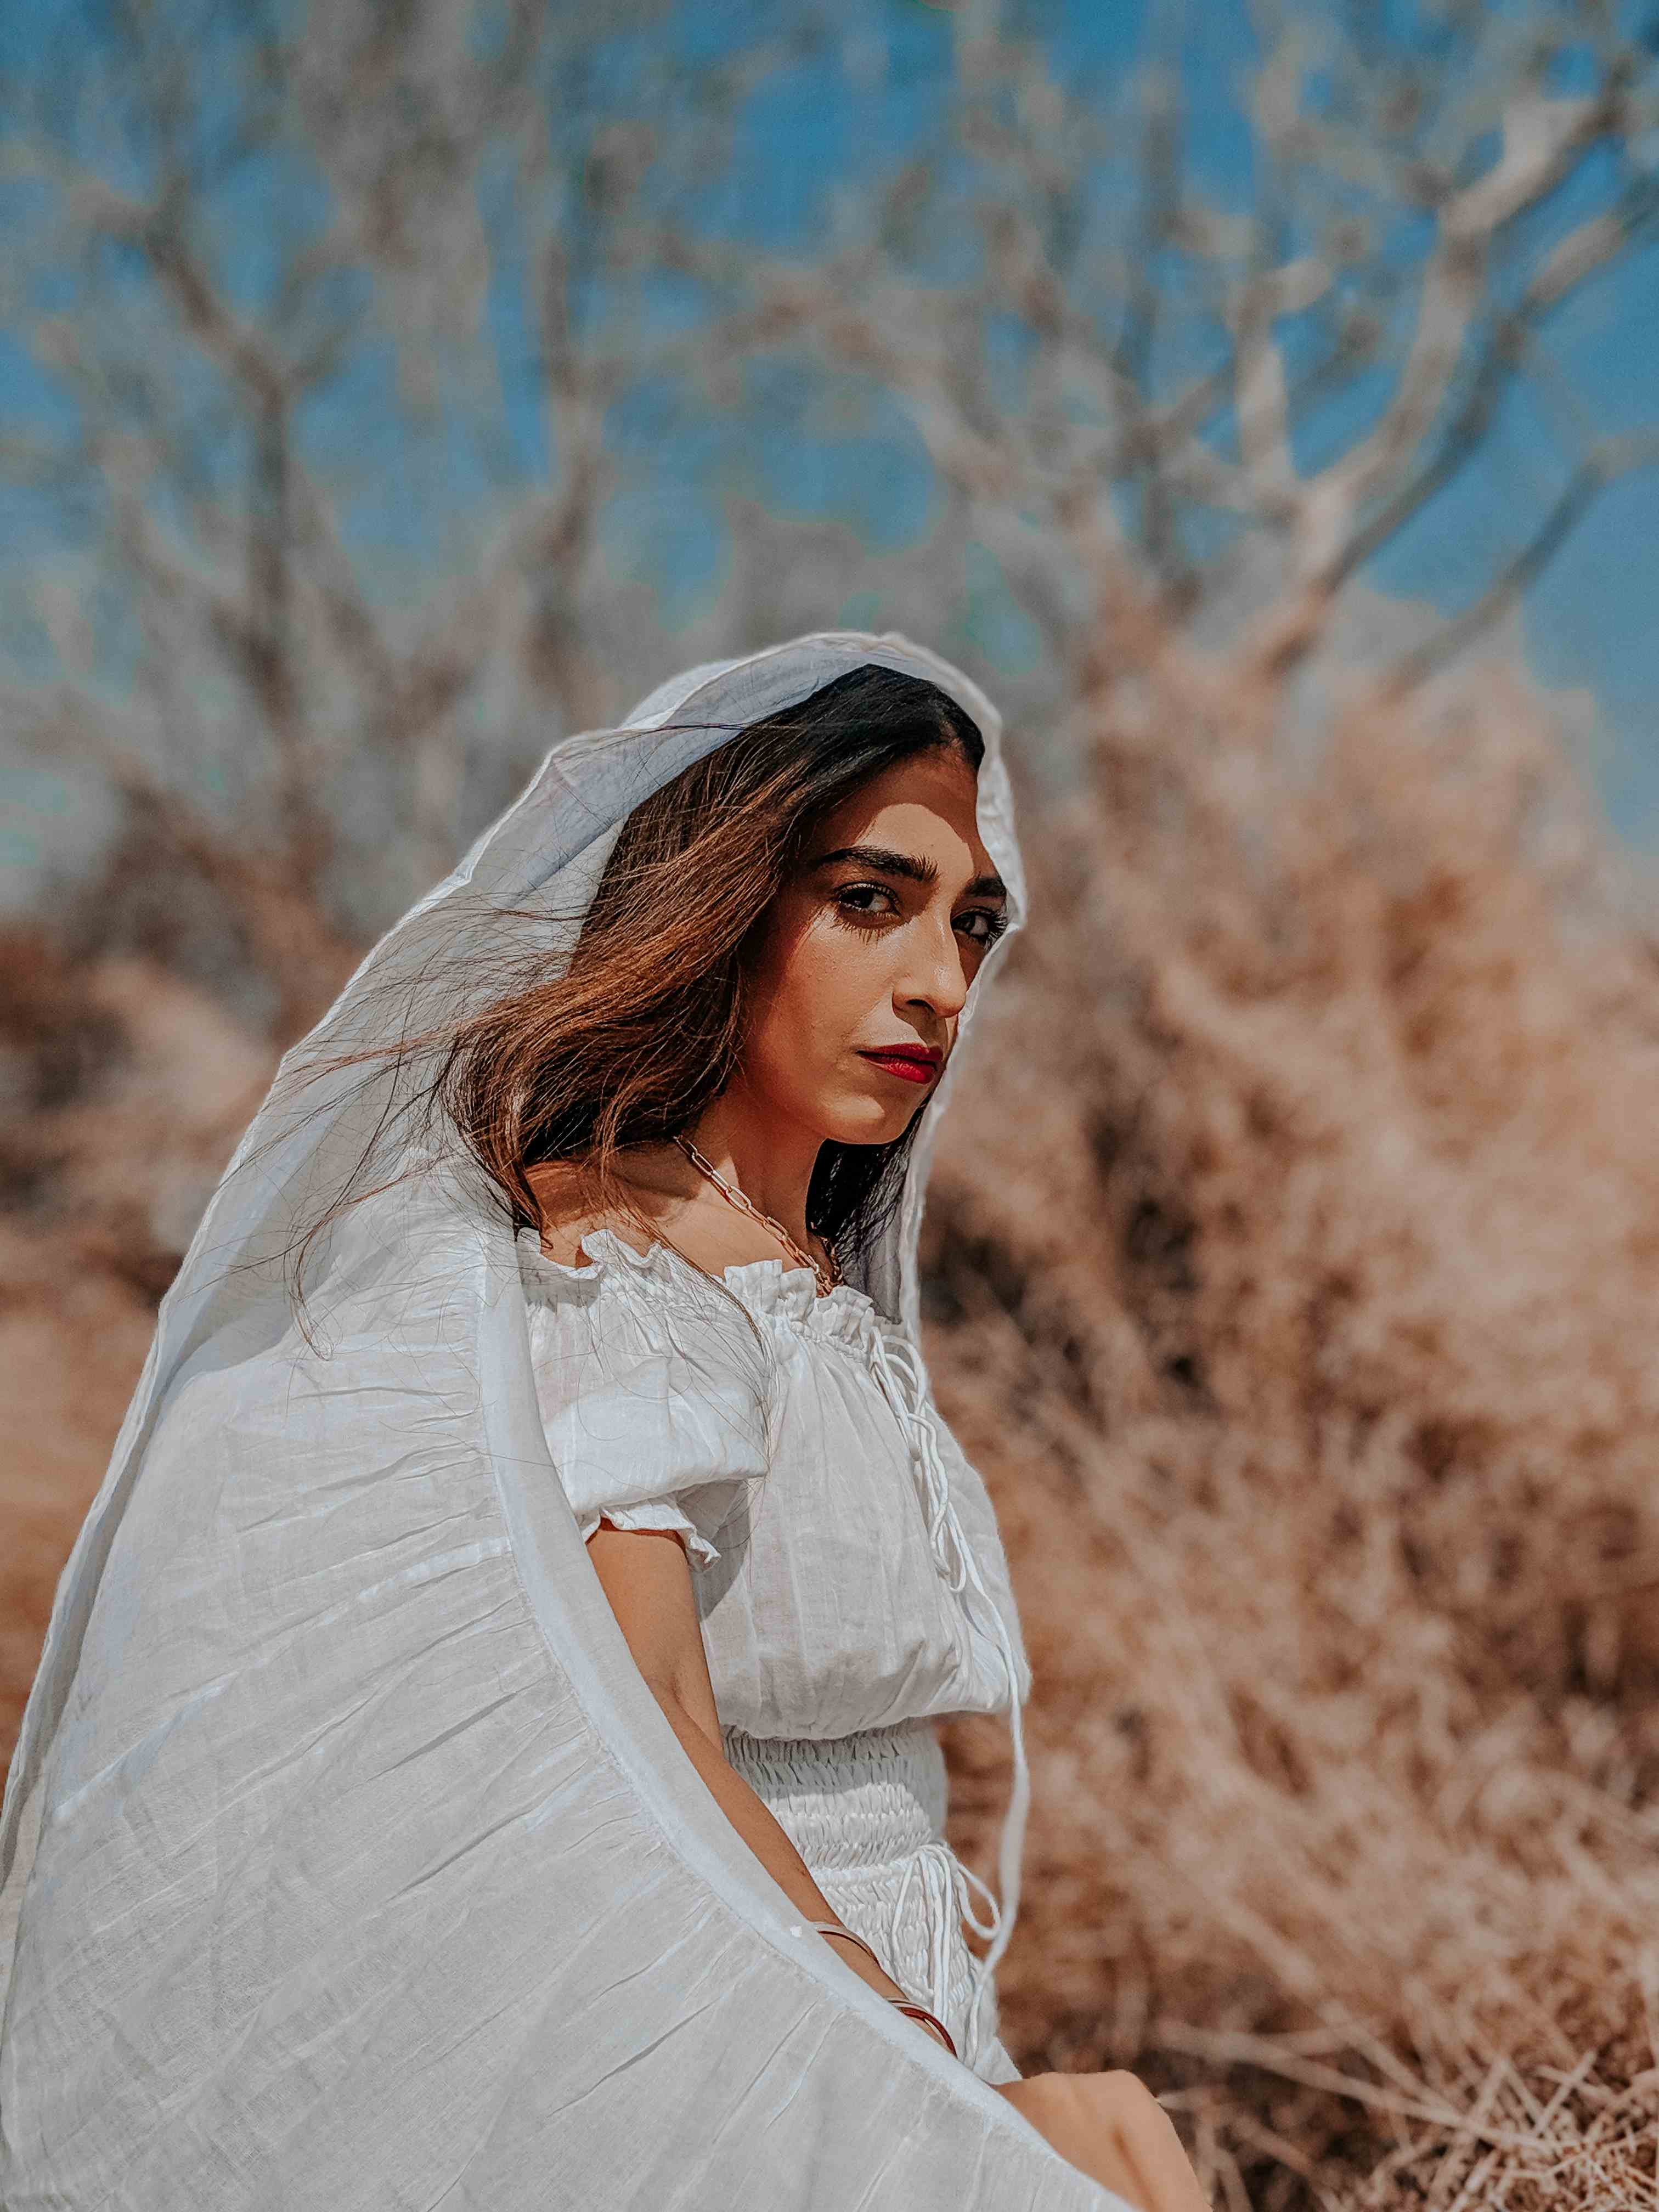 Outdoor editorial fashion shoot with girl in white dress & veil